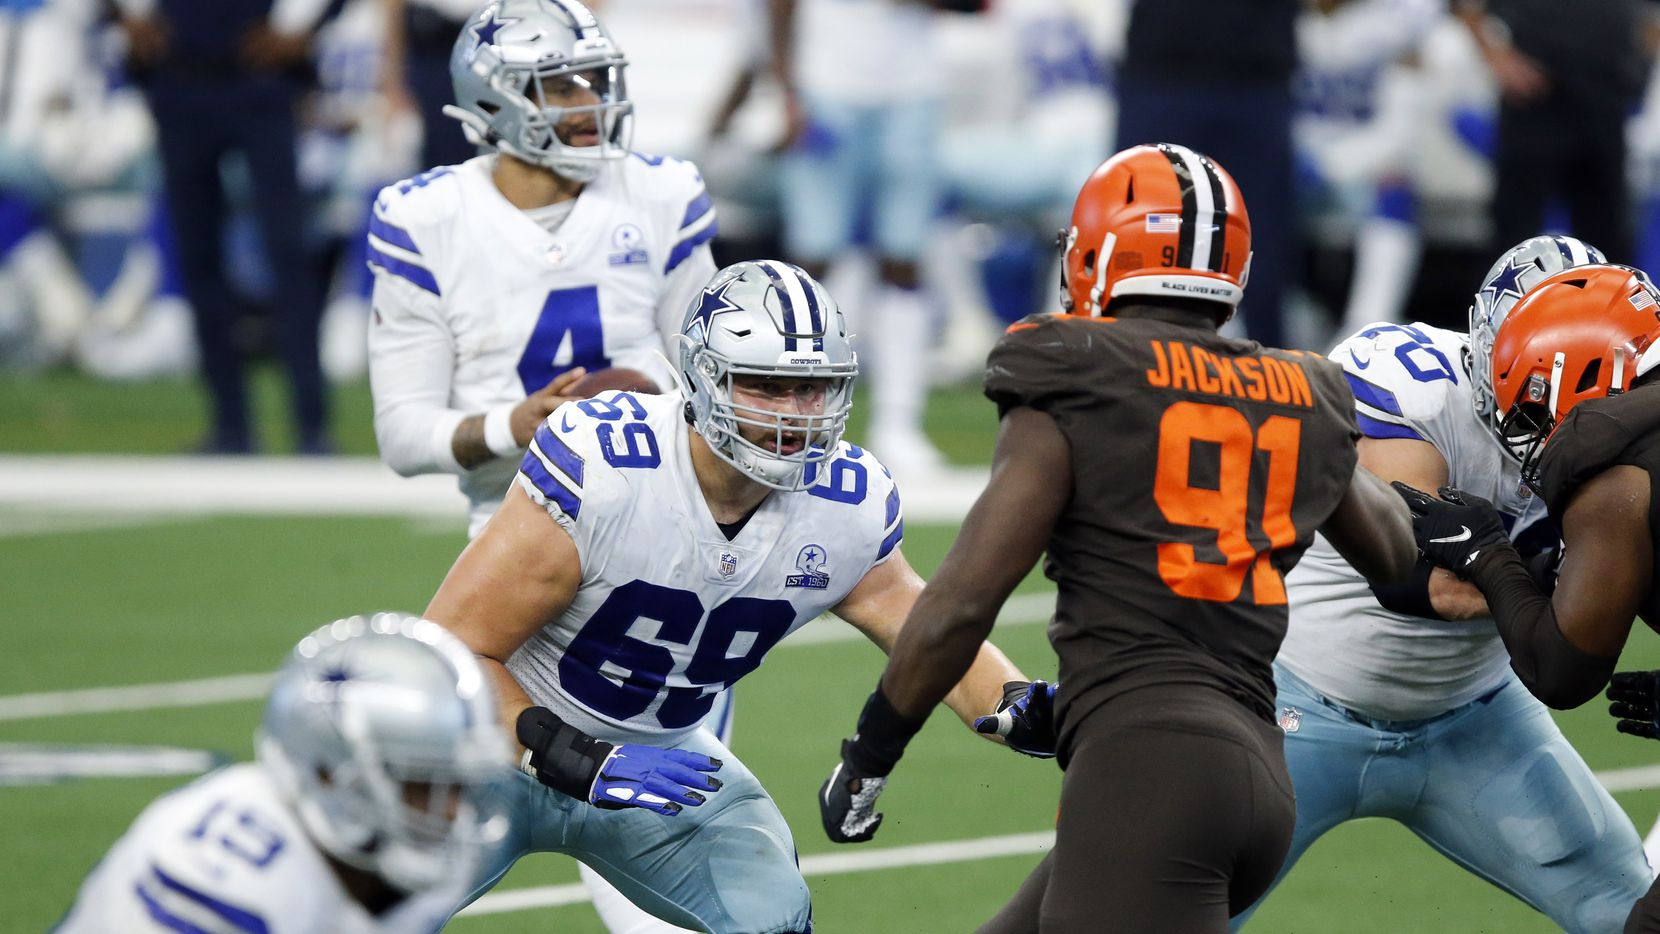 Dallas Cowboys offensive tackle Brandon Knight (69) blocks Cleveland Browns defensive end Joe Jackson (91) during the fourth quarter at AT&T Stadium in Arlington, Texas, Sunday, October 4, 2020.